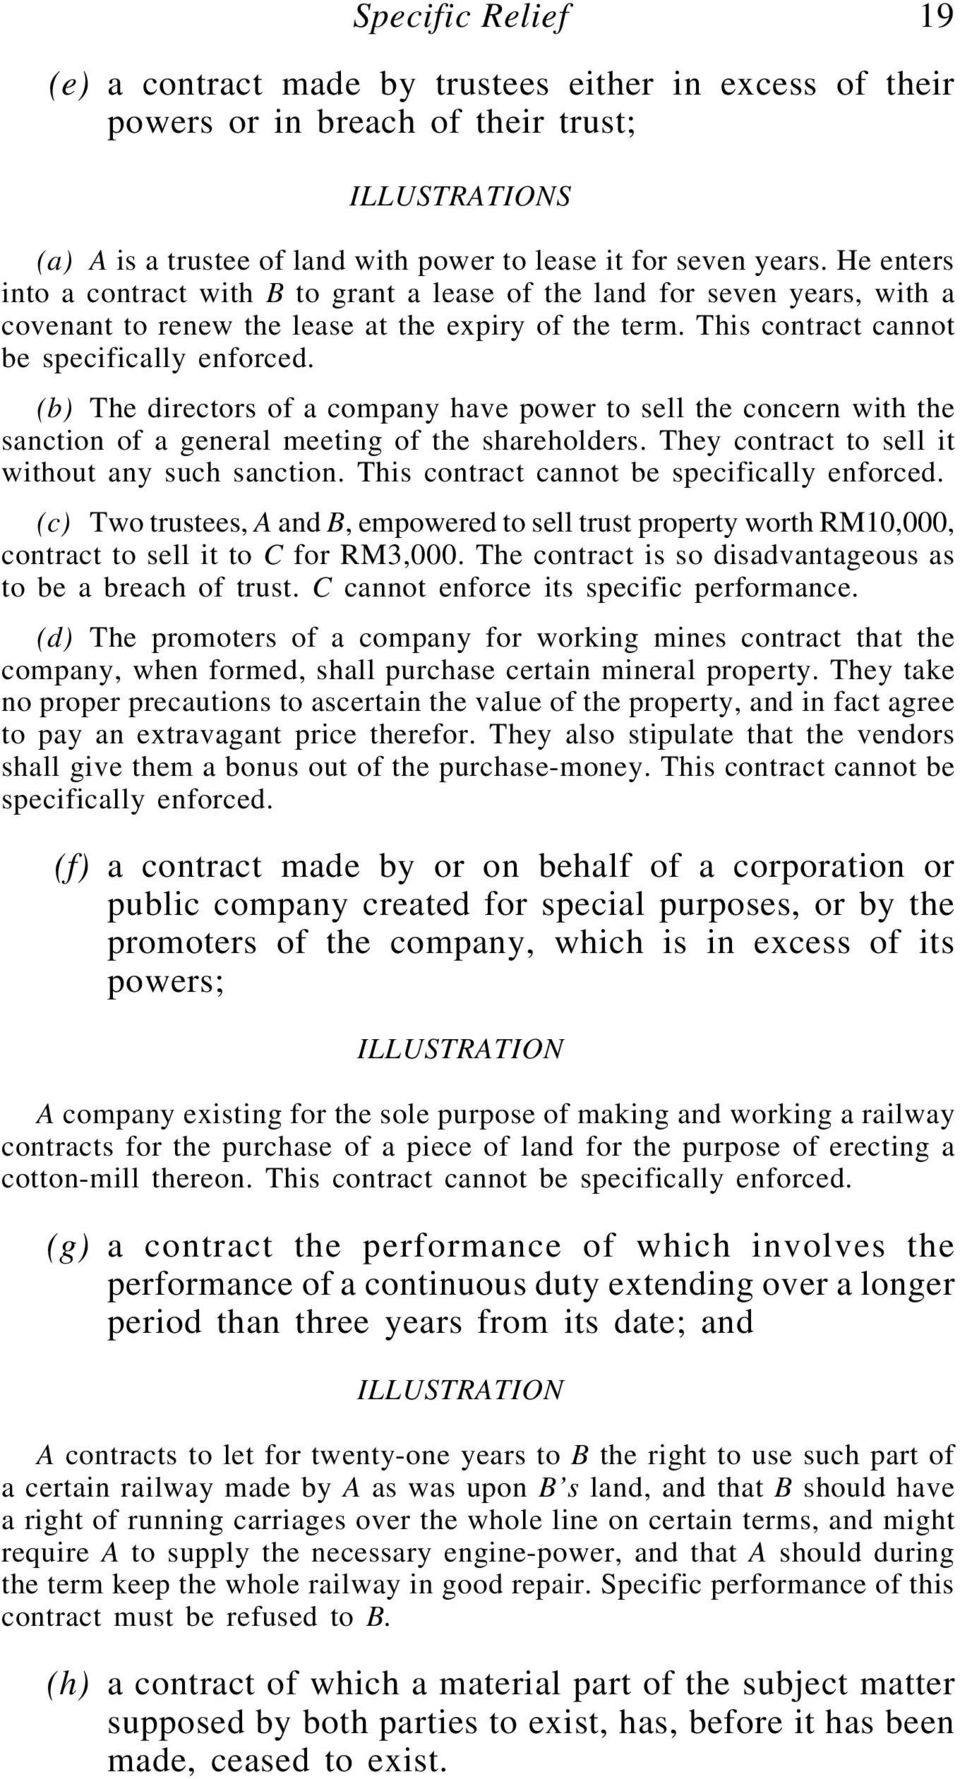 (b) The directors of a company have power to sell the concern with the sanction of a general meeting of the shareholders. They contract to sell it without any such sanction.